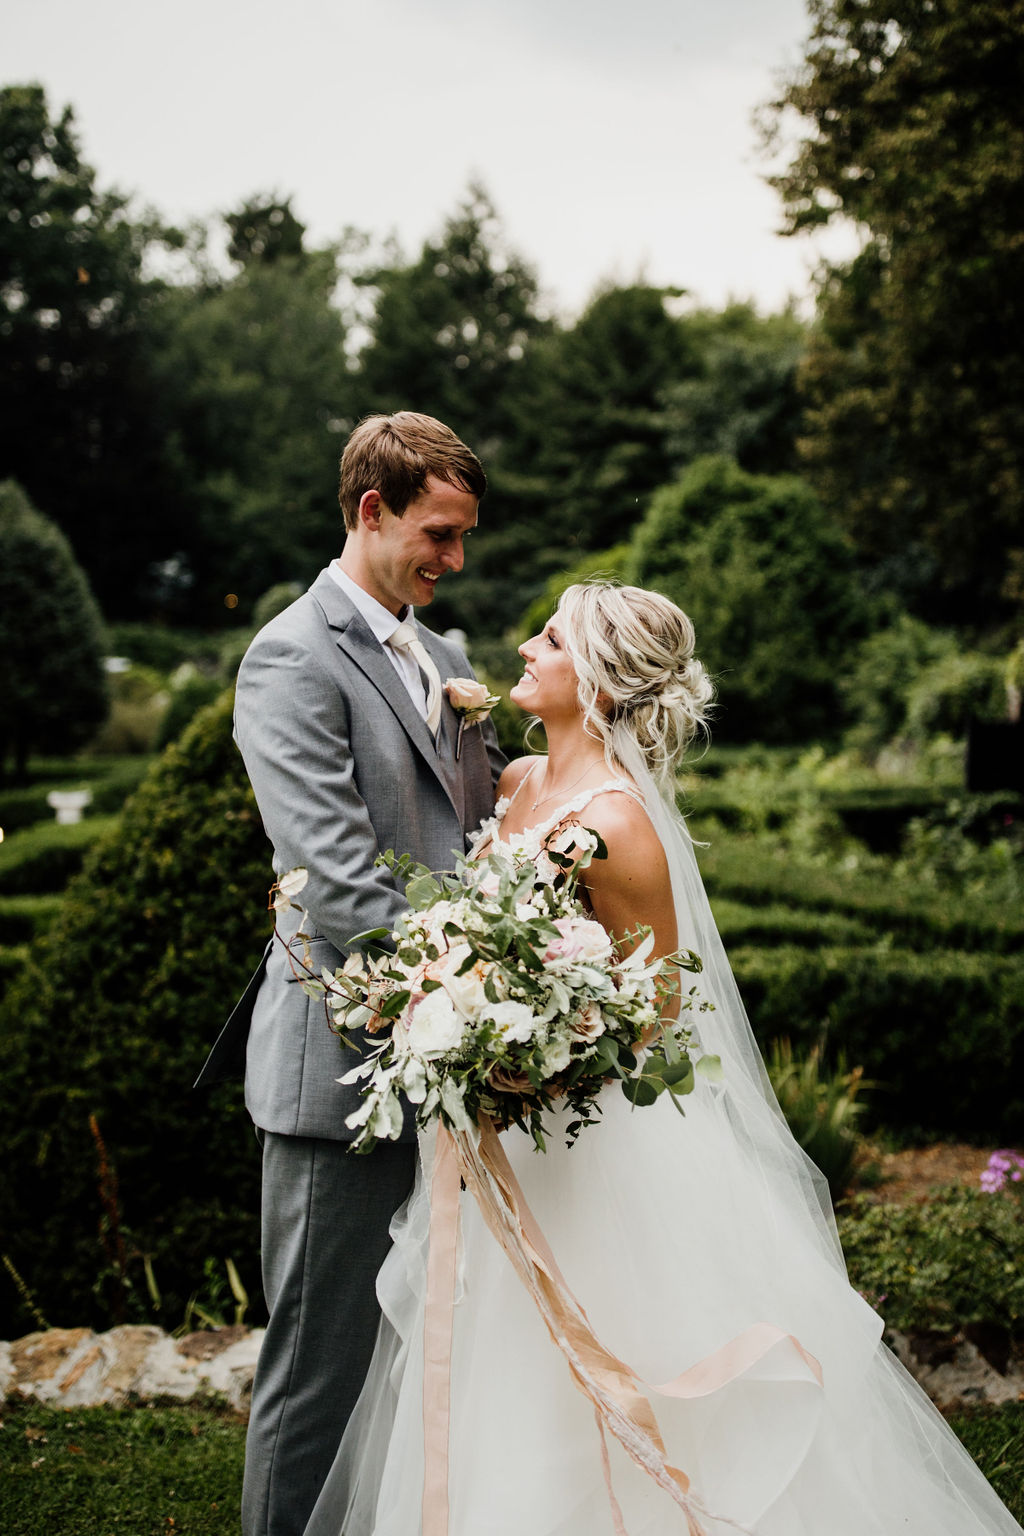 Picture Perfect… - With a couple and setting as beautiful as the Airlie Gardens, there was no way for us not to fall in love with all of their photos!